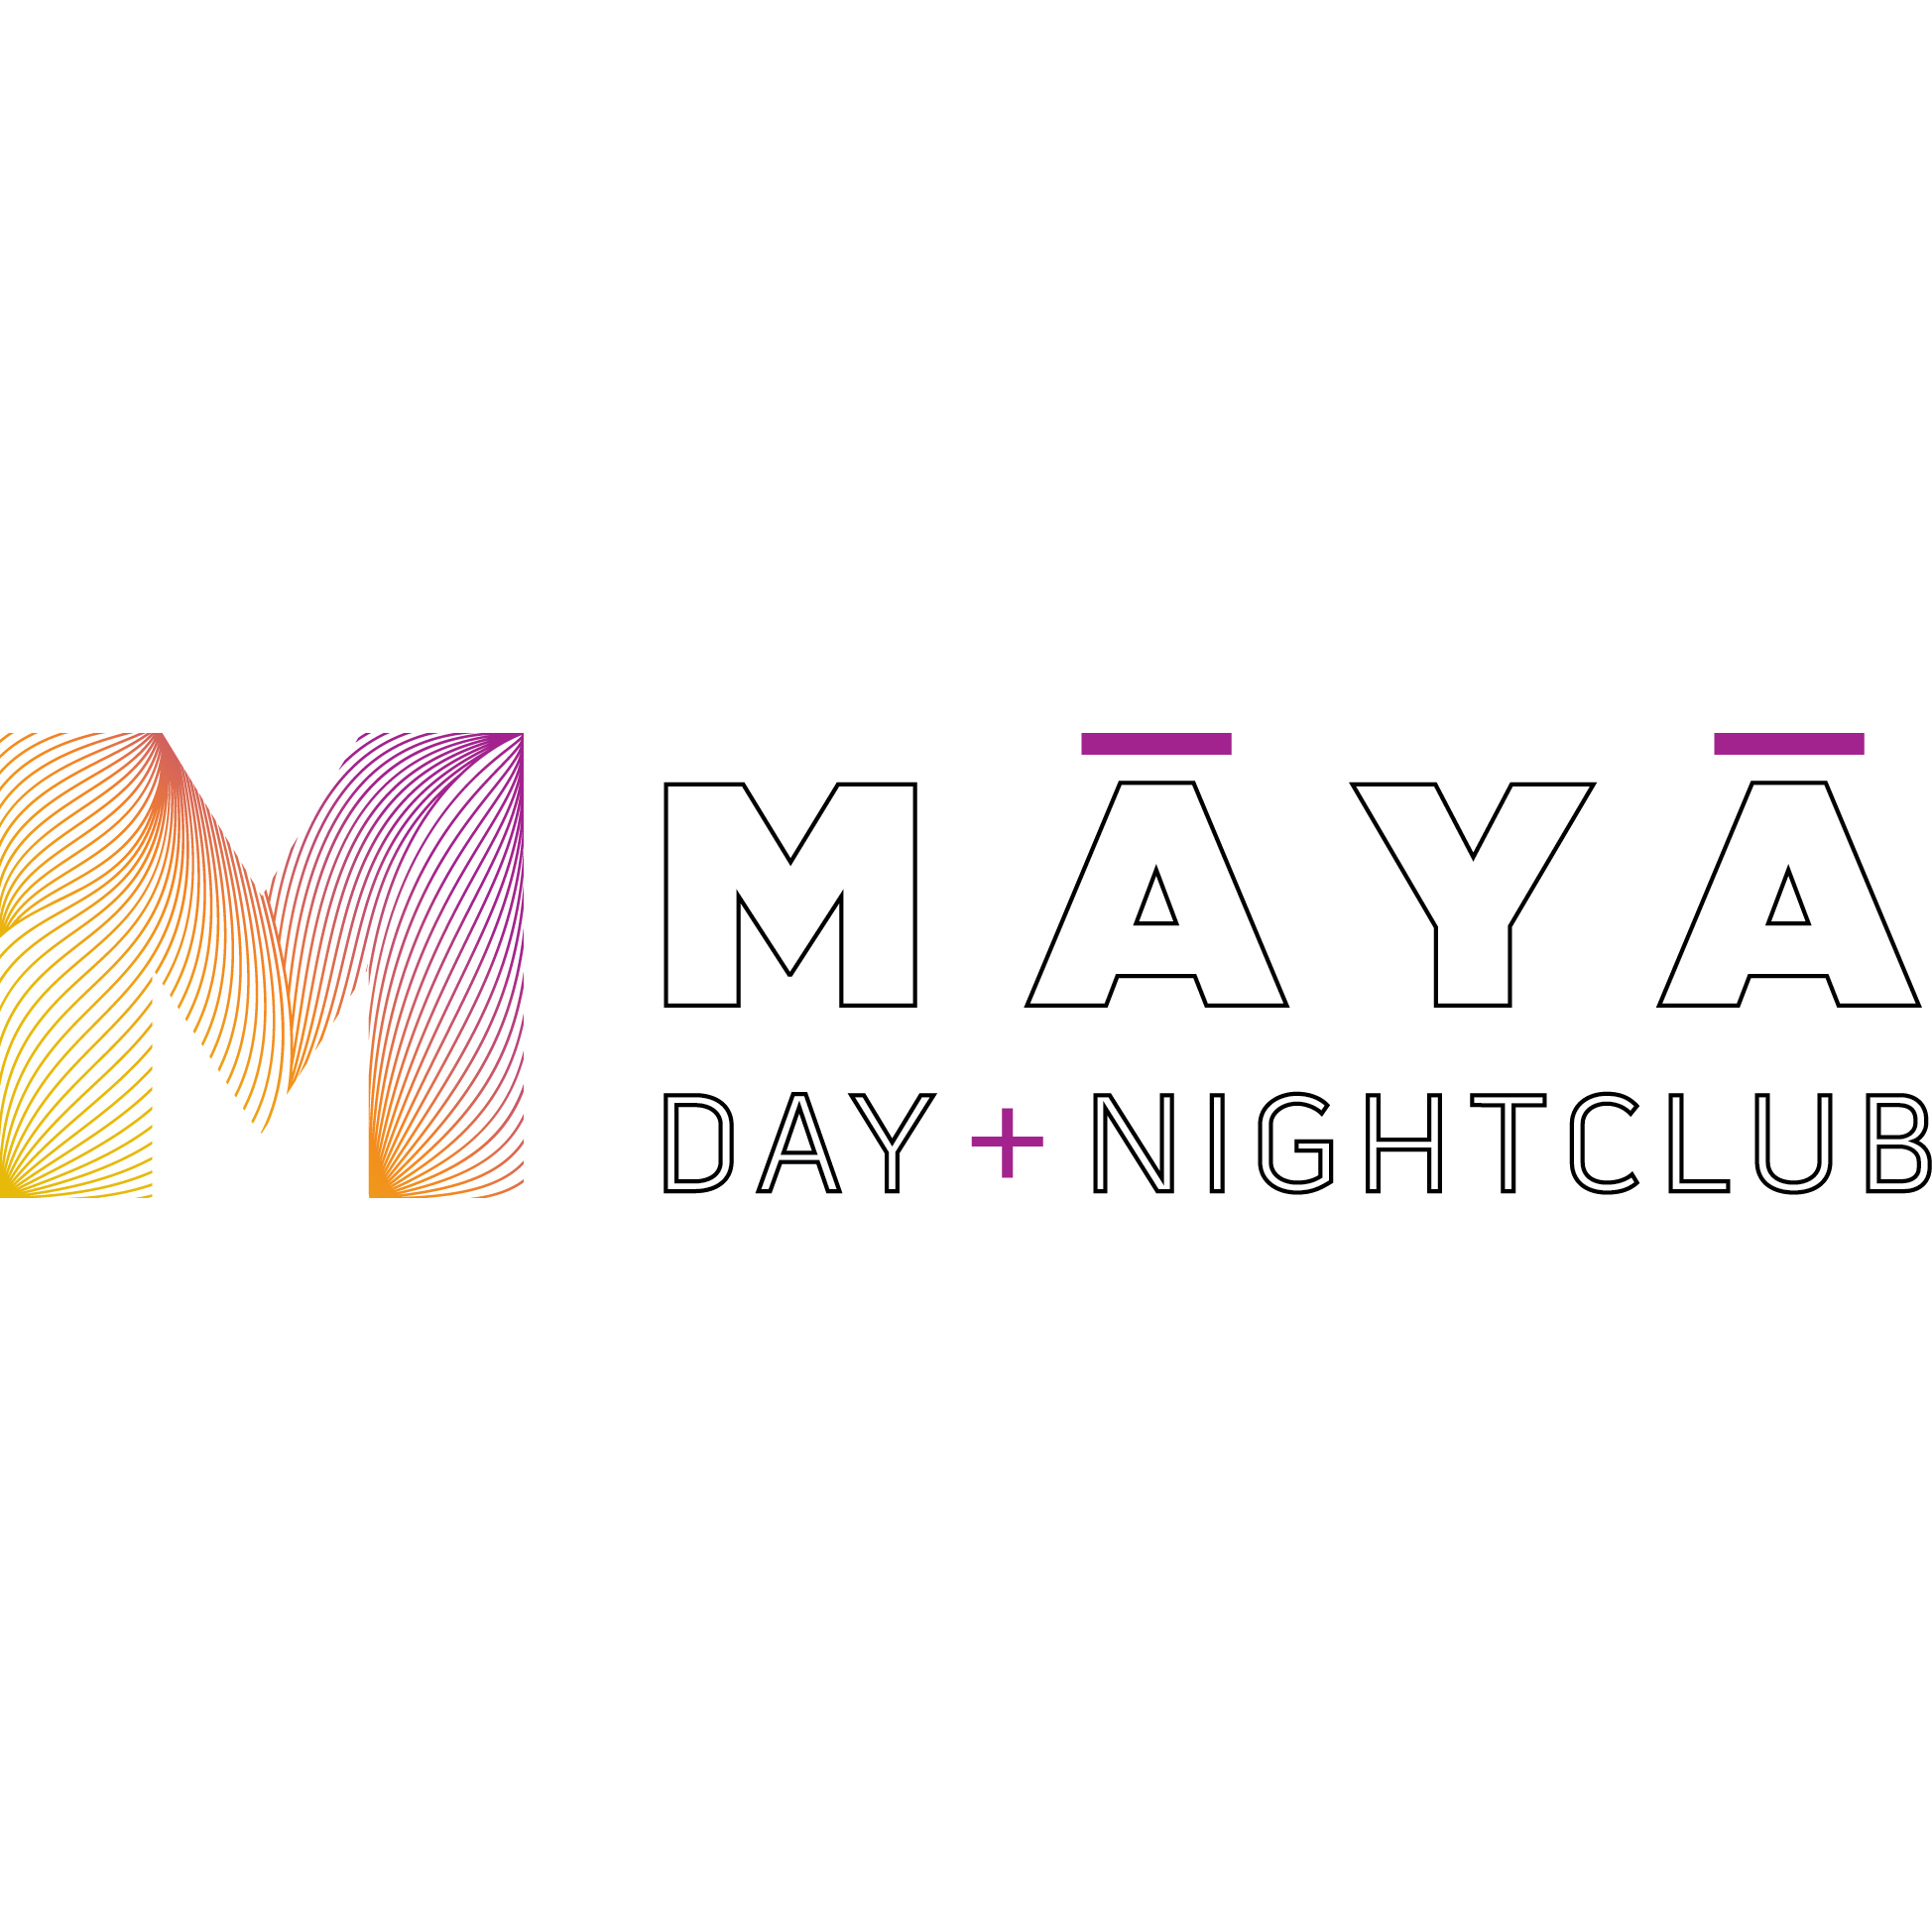 Maya Day and Nightclub